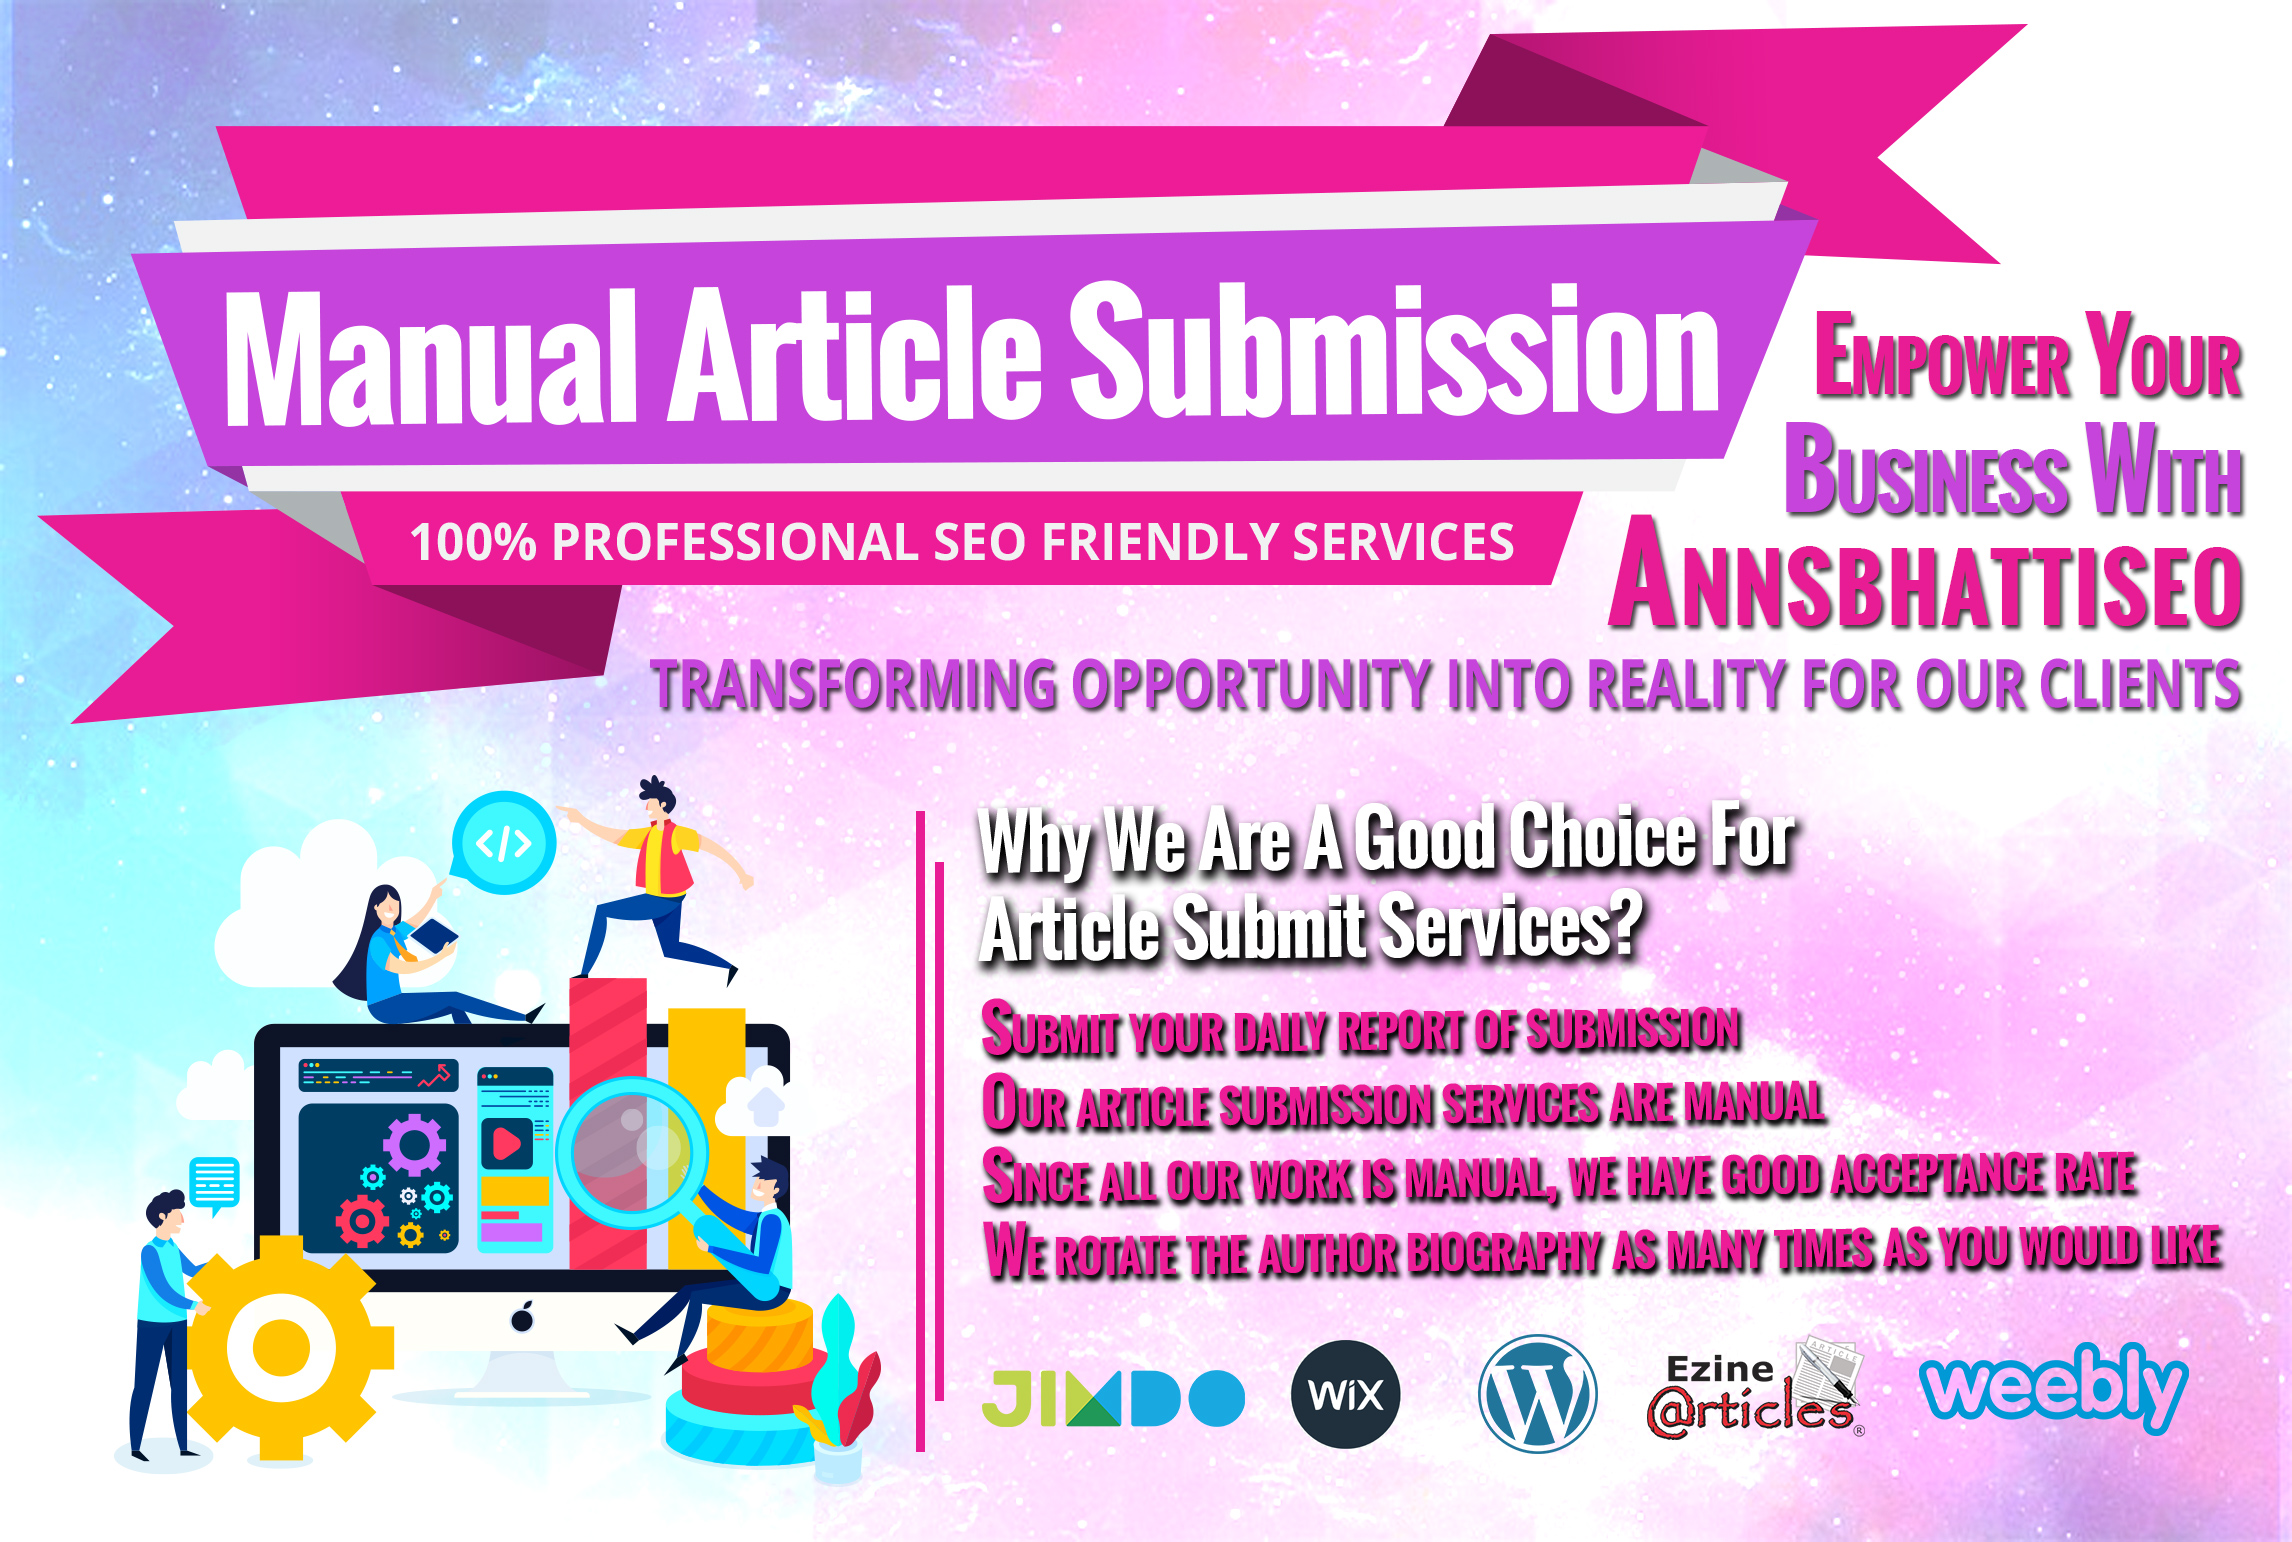 We do 10 Links 100 professional SEO friendly manual article submission services